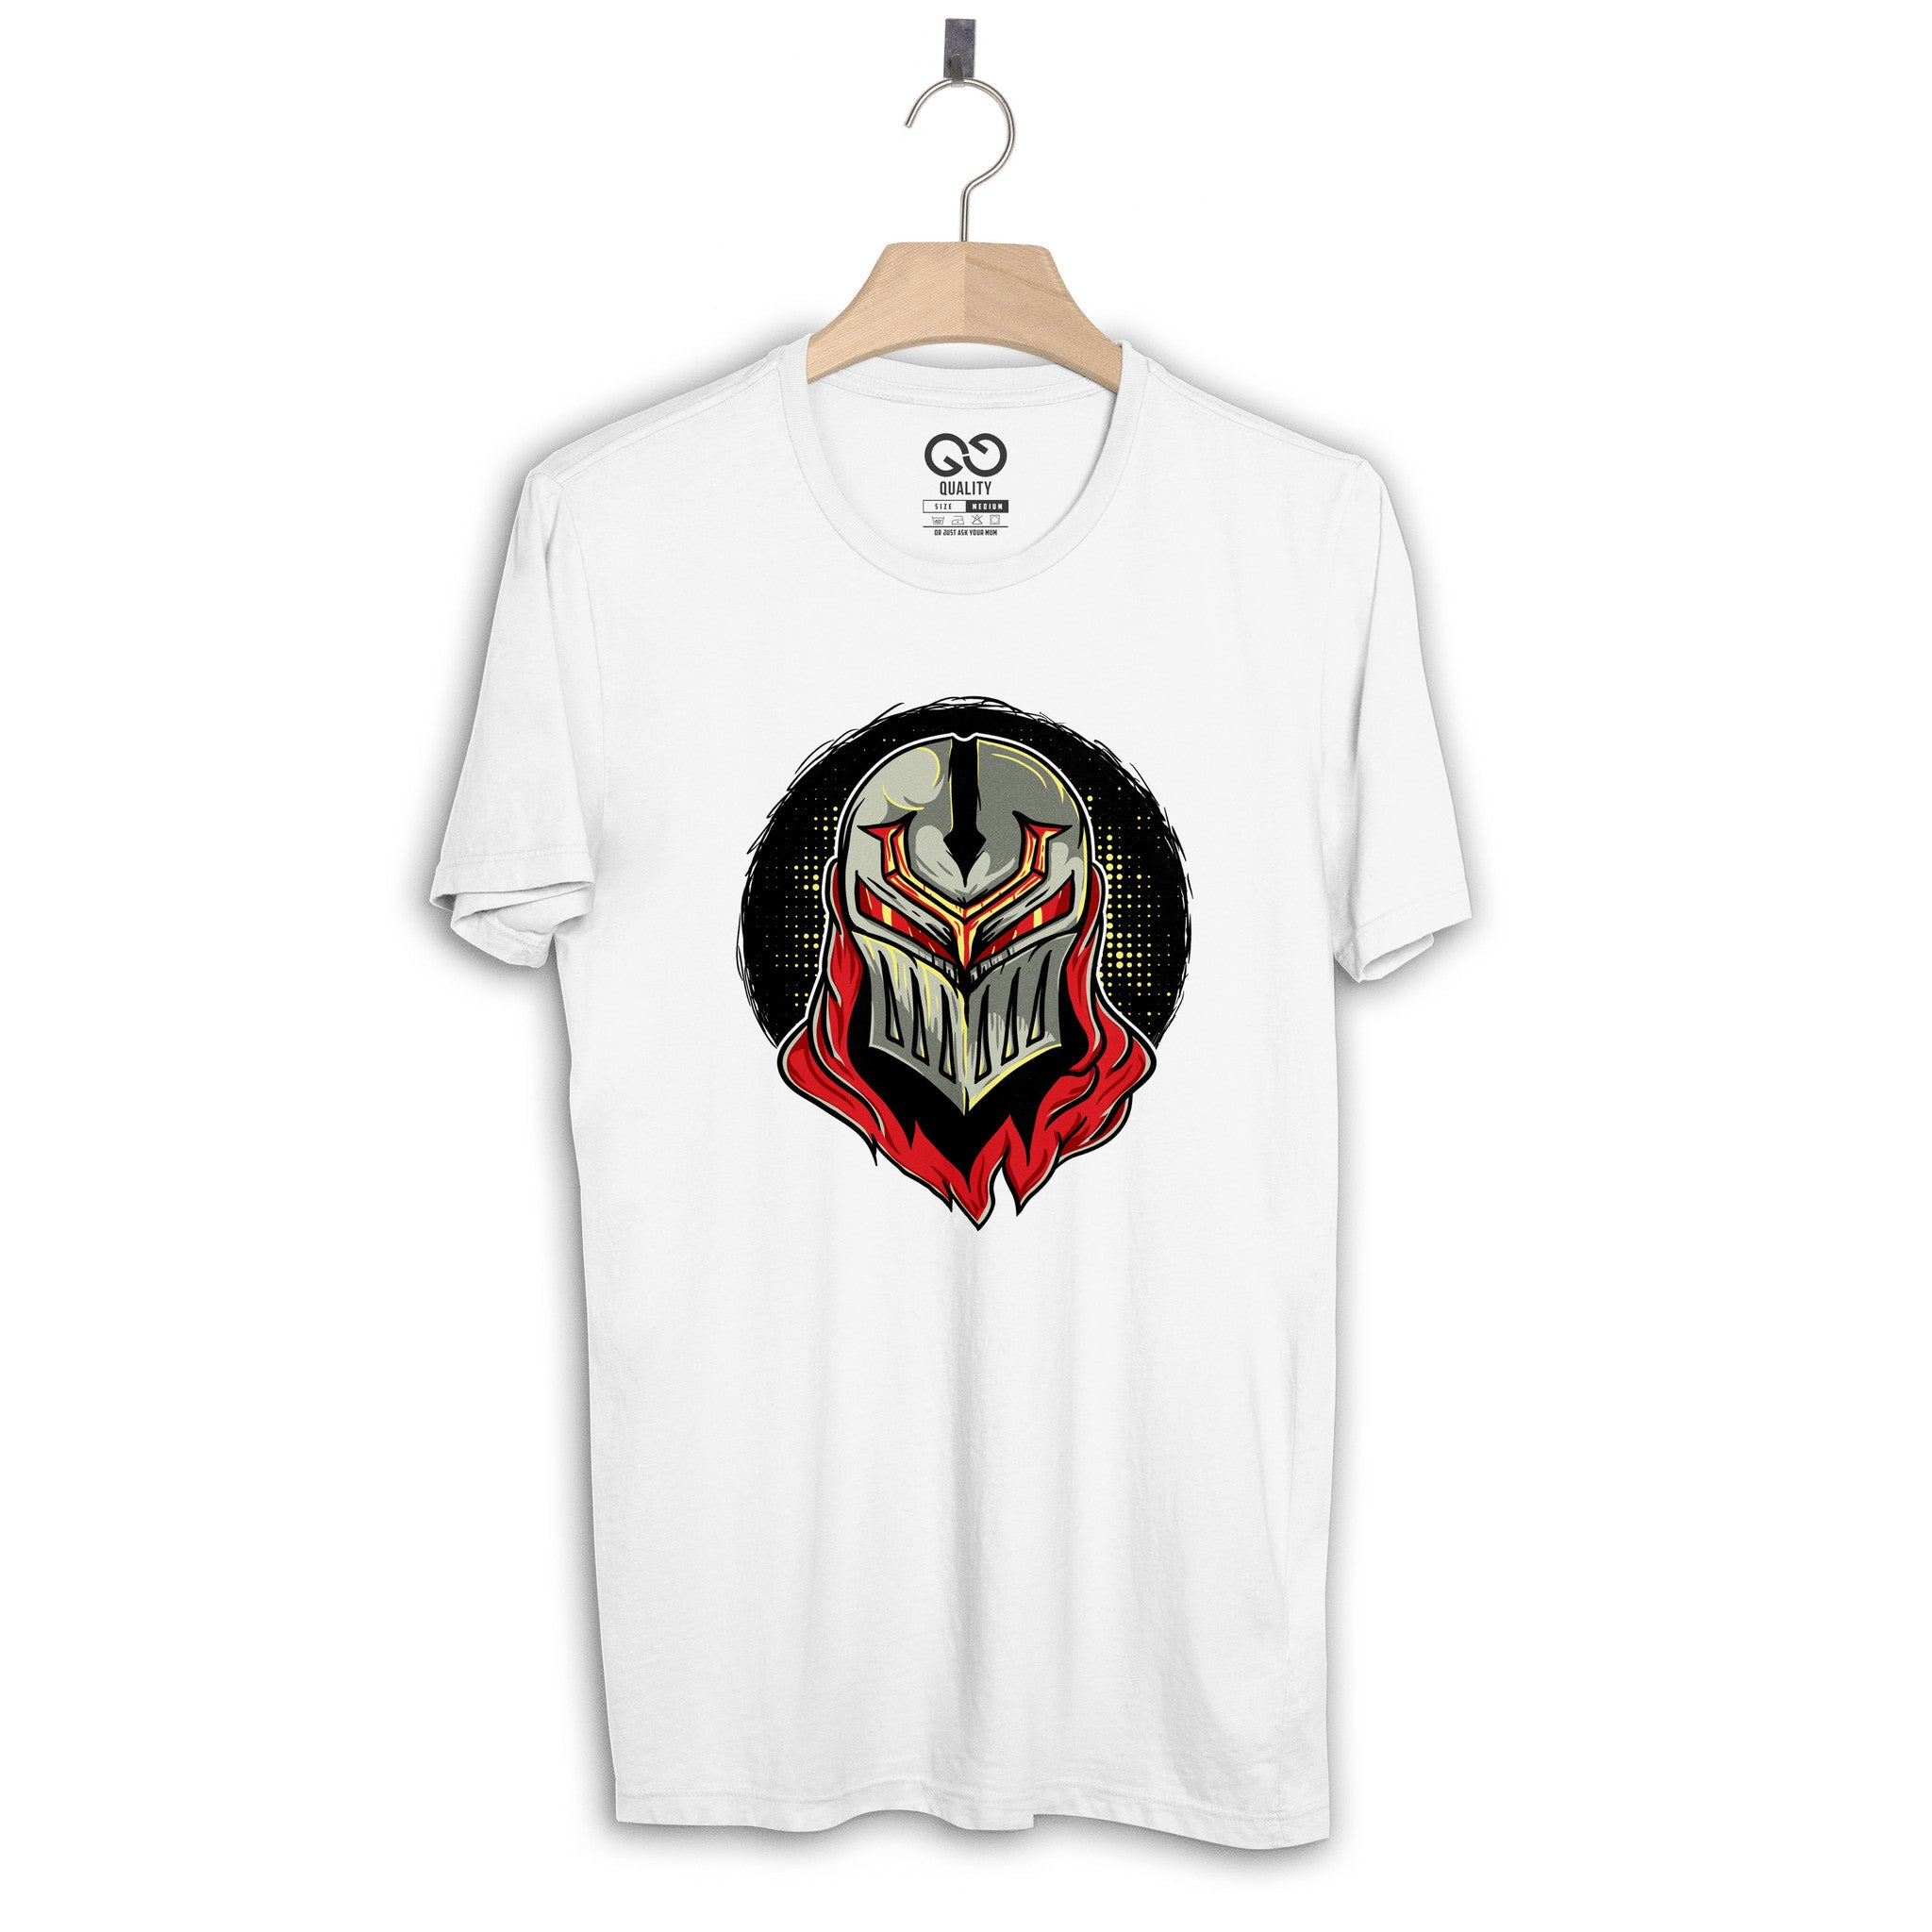 Zed Mask (Shirt) - GG Apparel